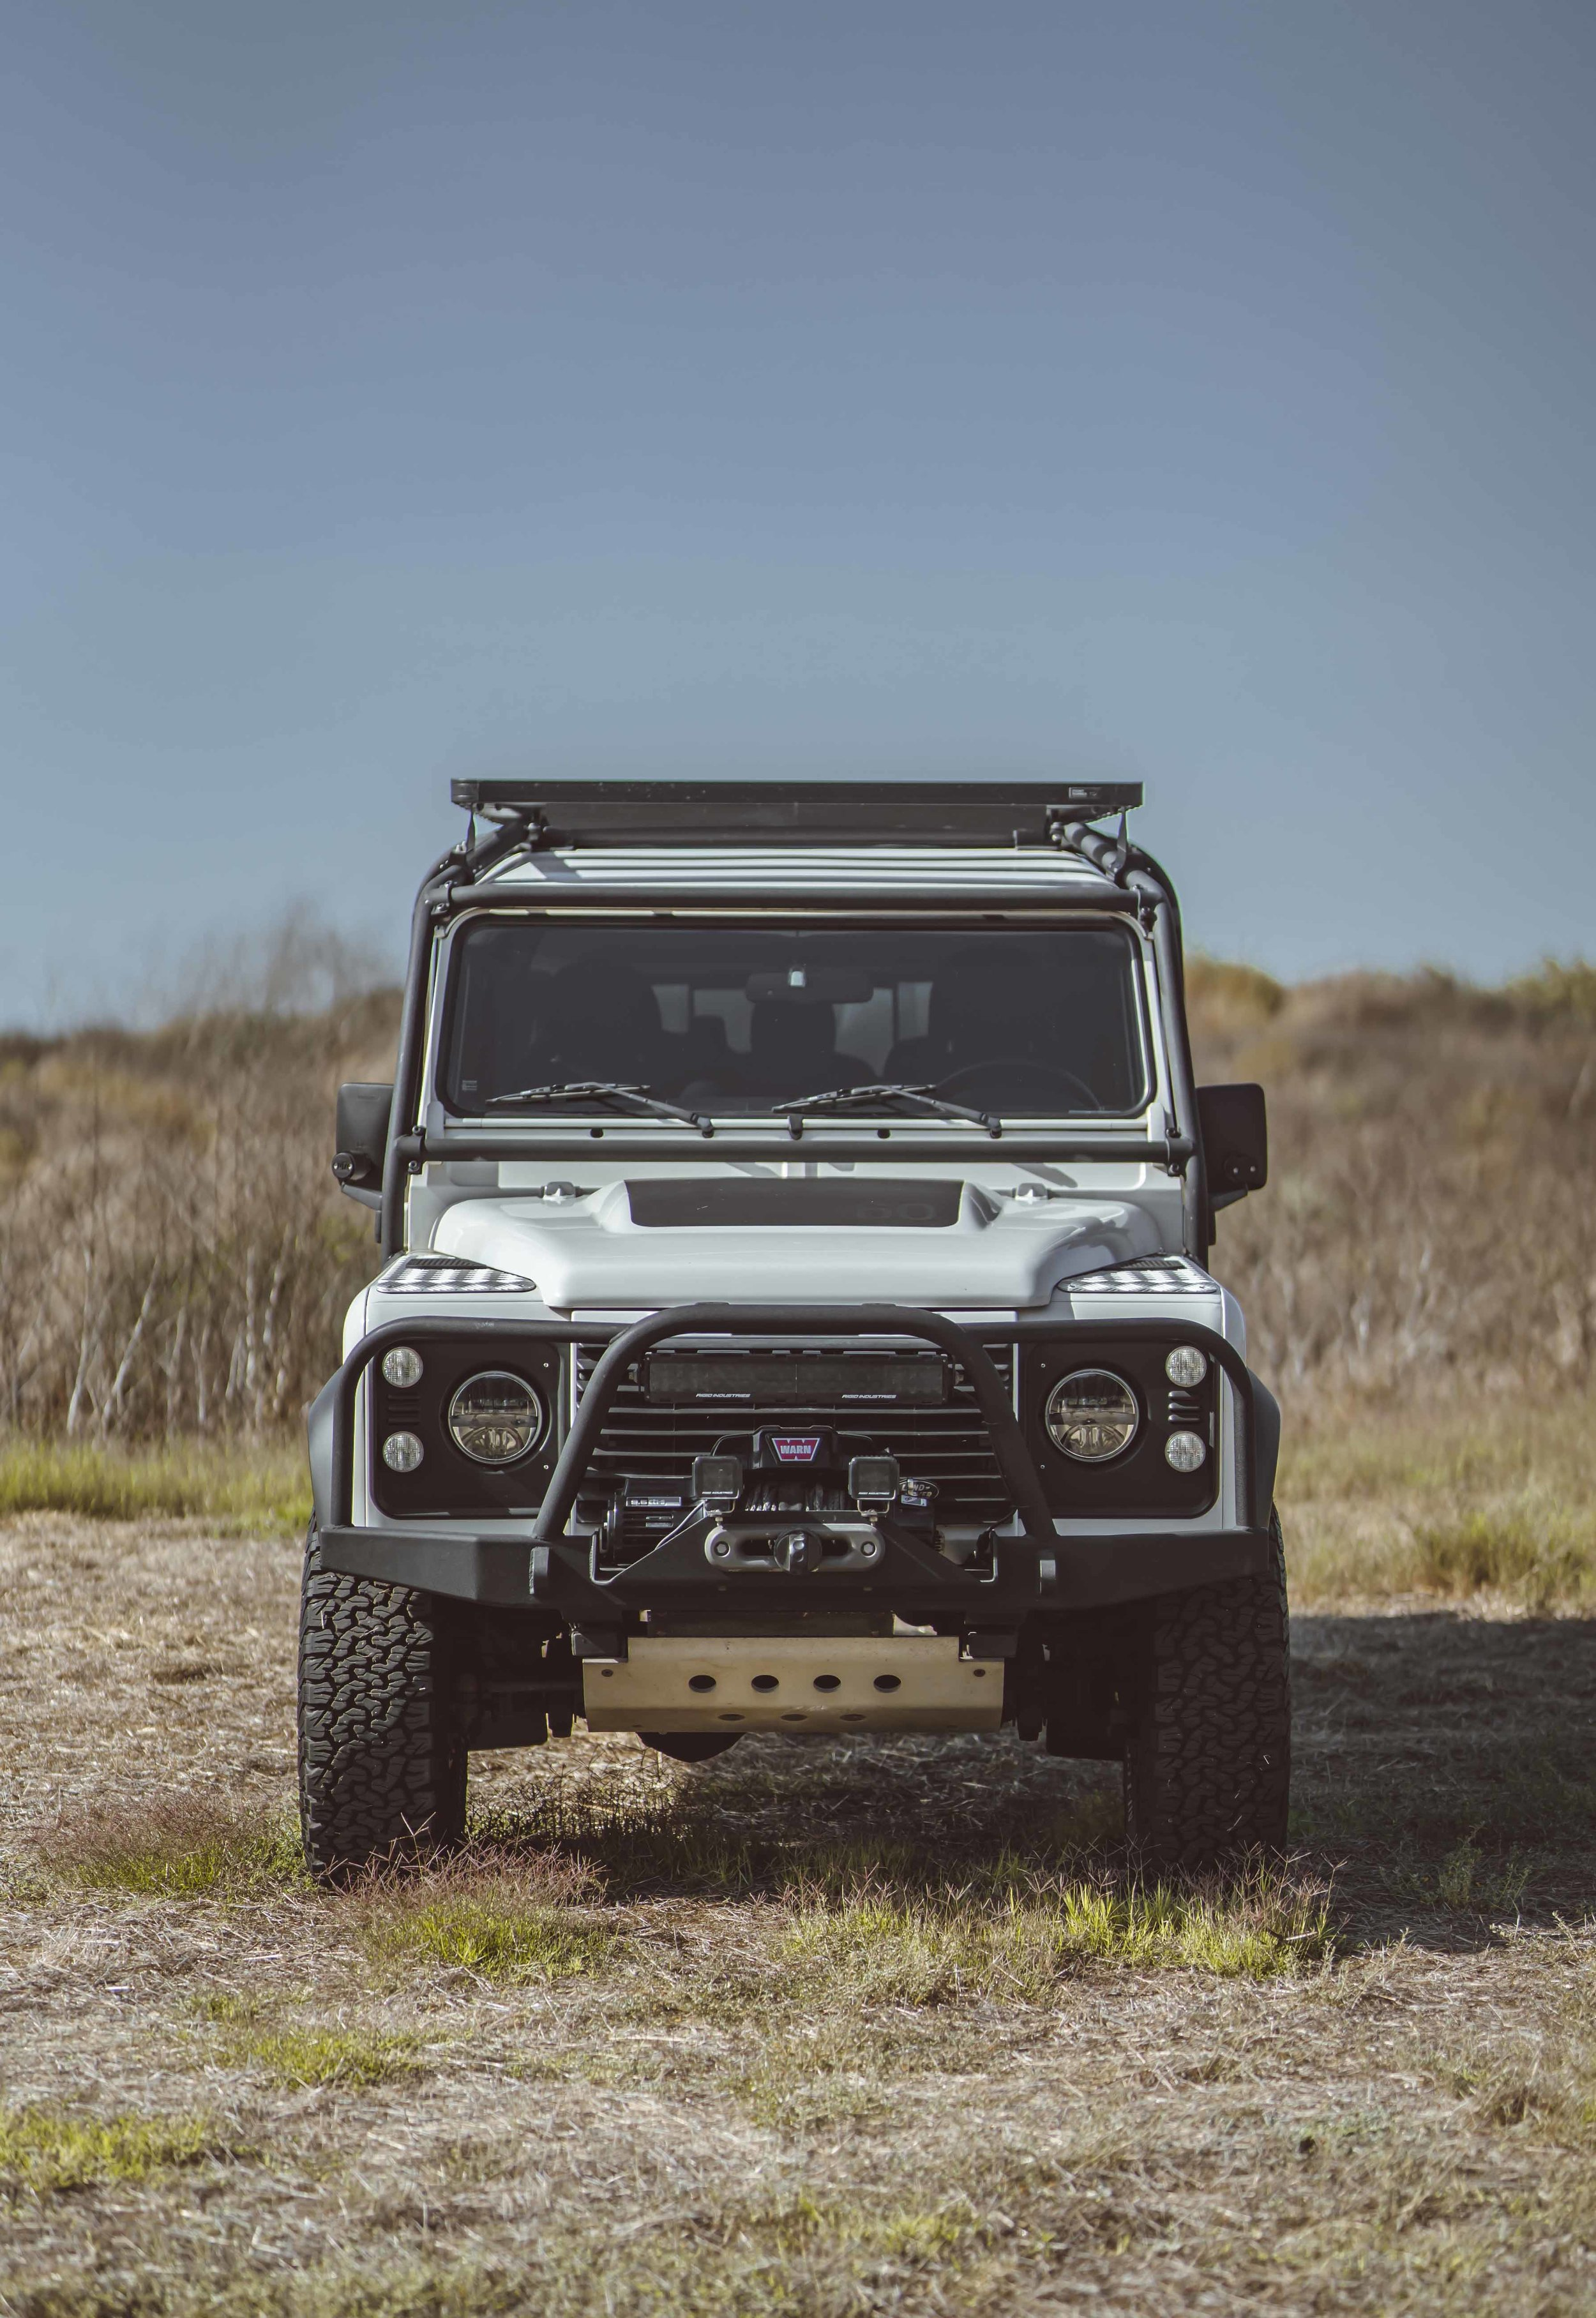 Land_Rover_130_Expedition_2xlarge_0004_Layer 13.jpg